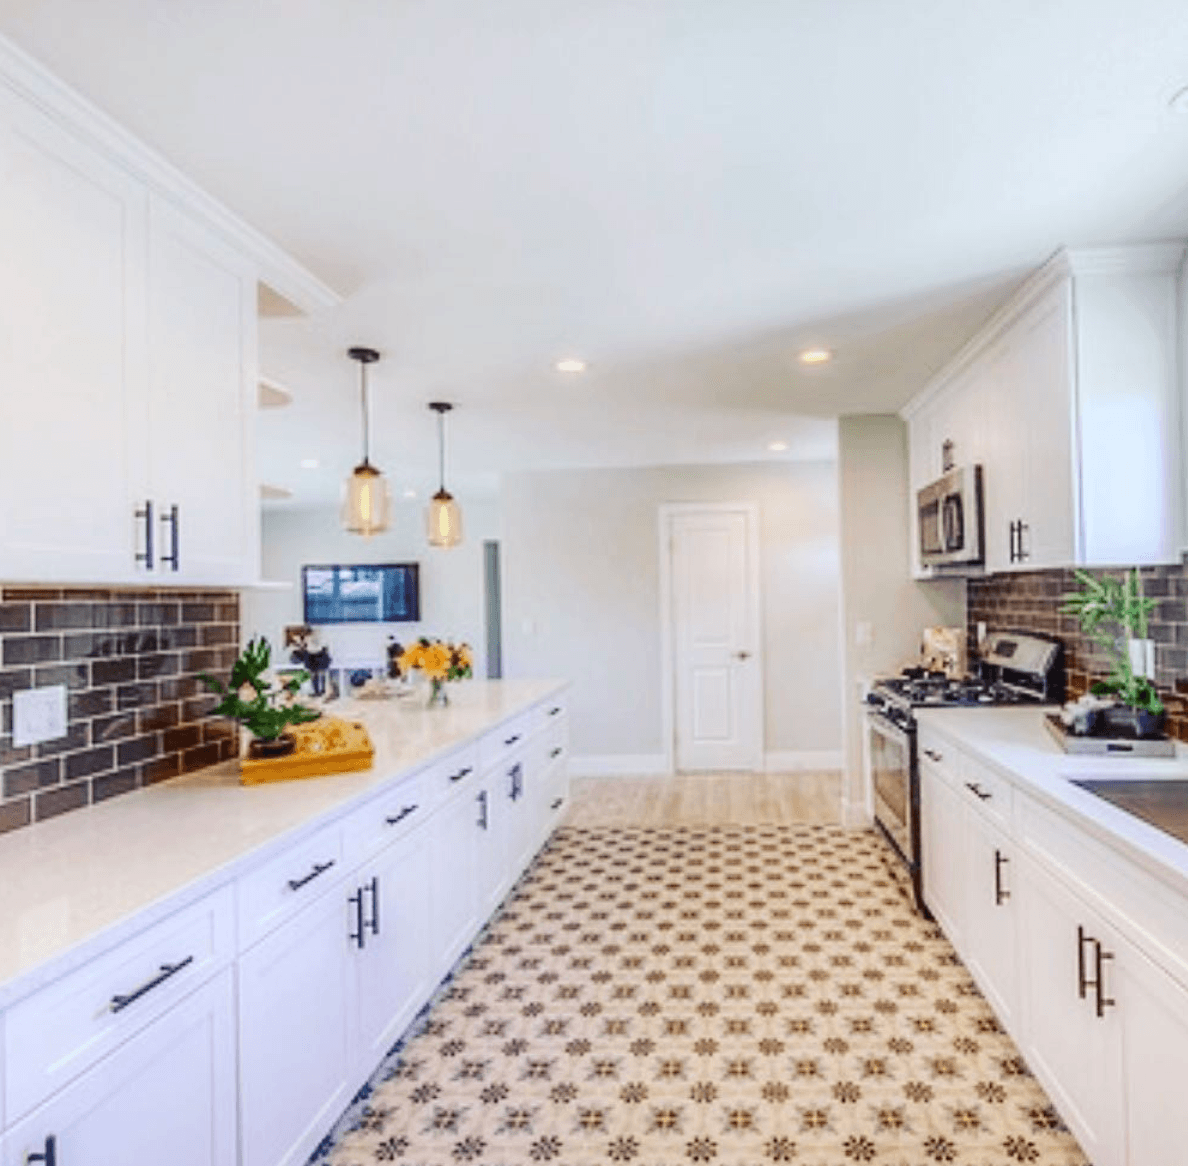 Flip or flop kitchen counter